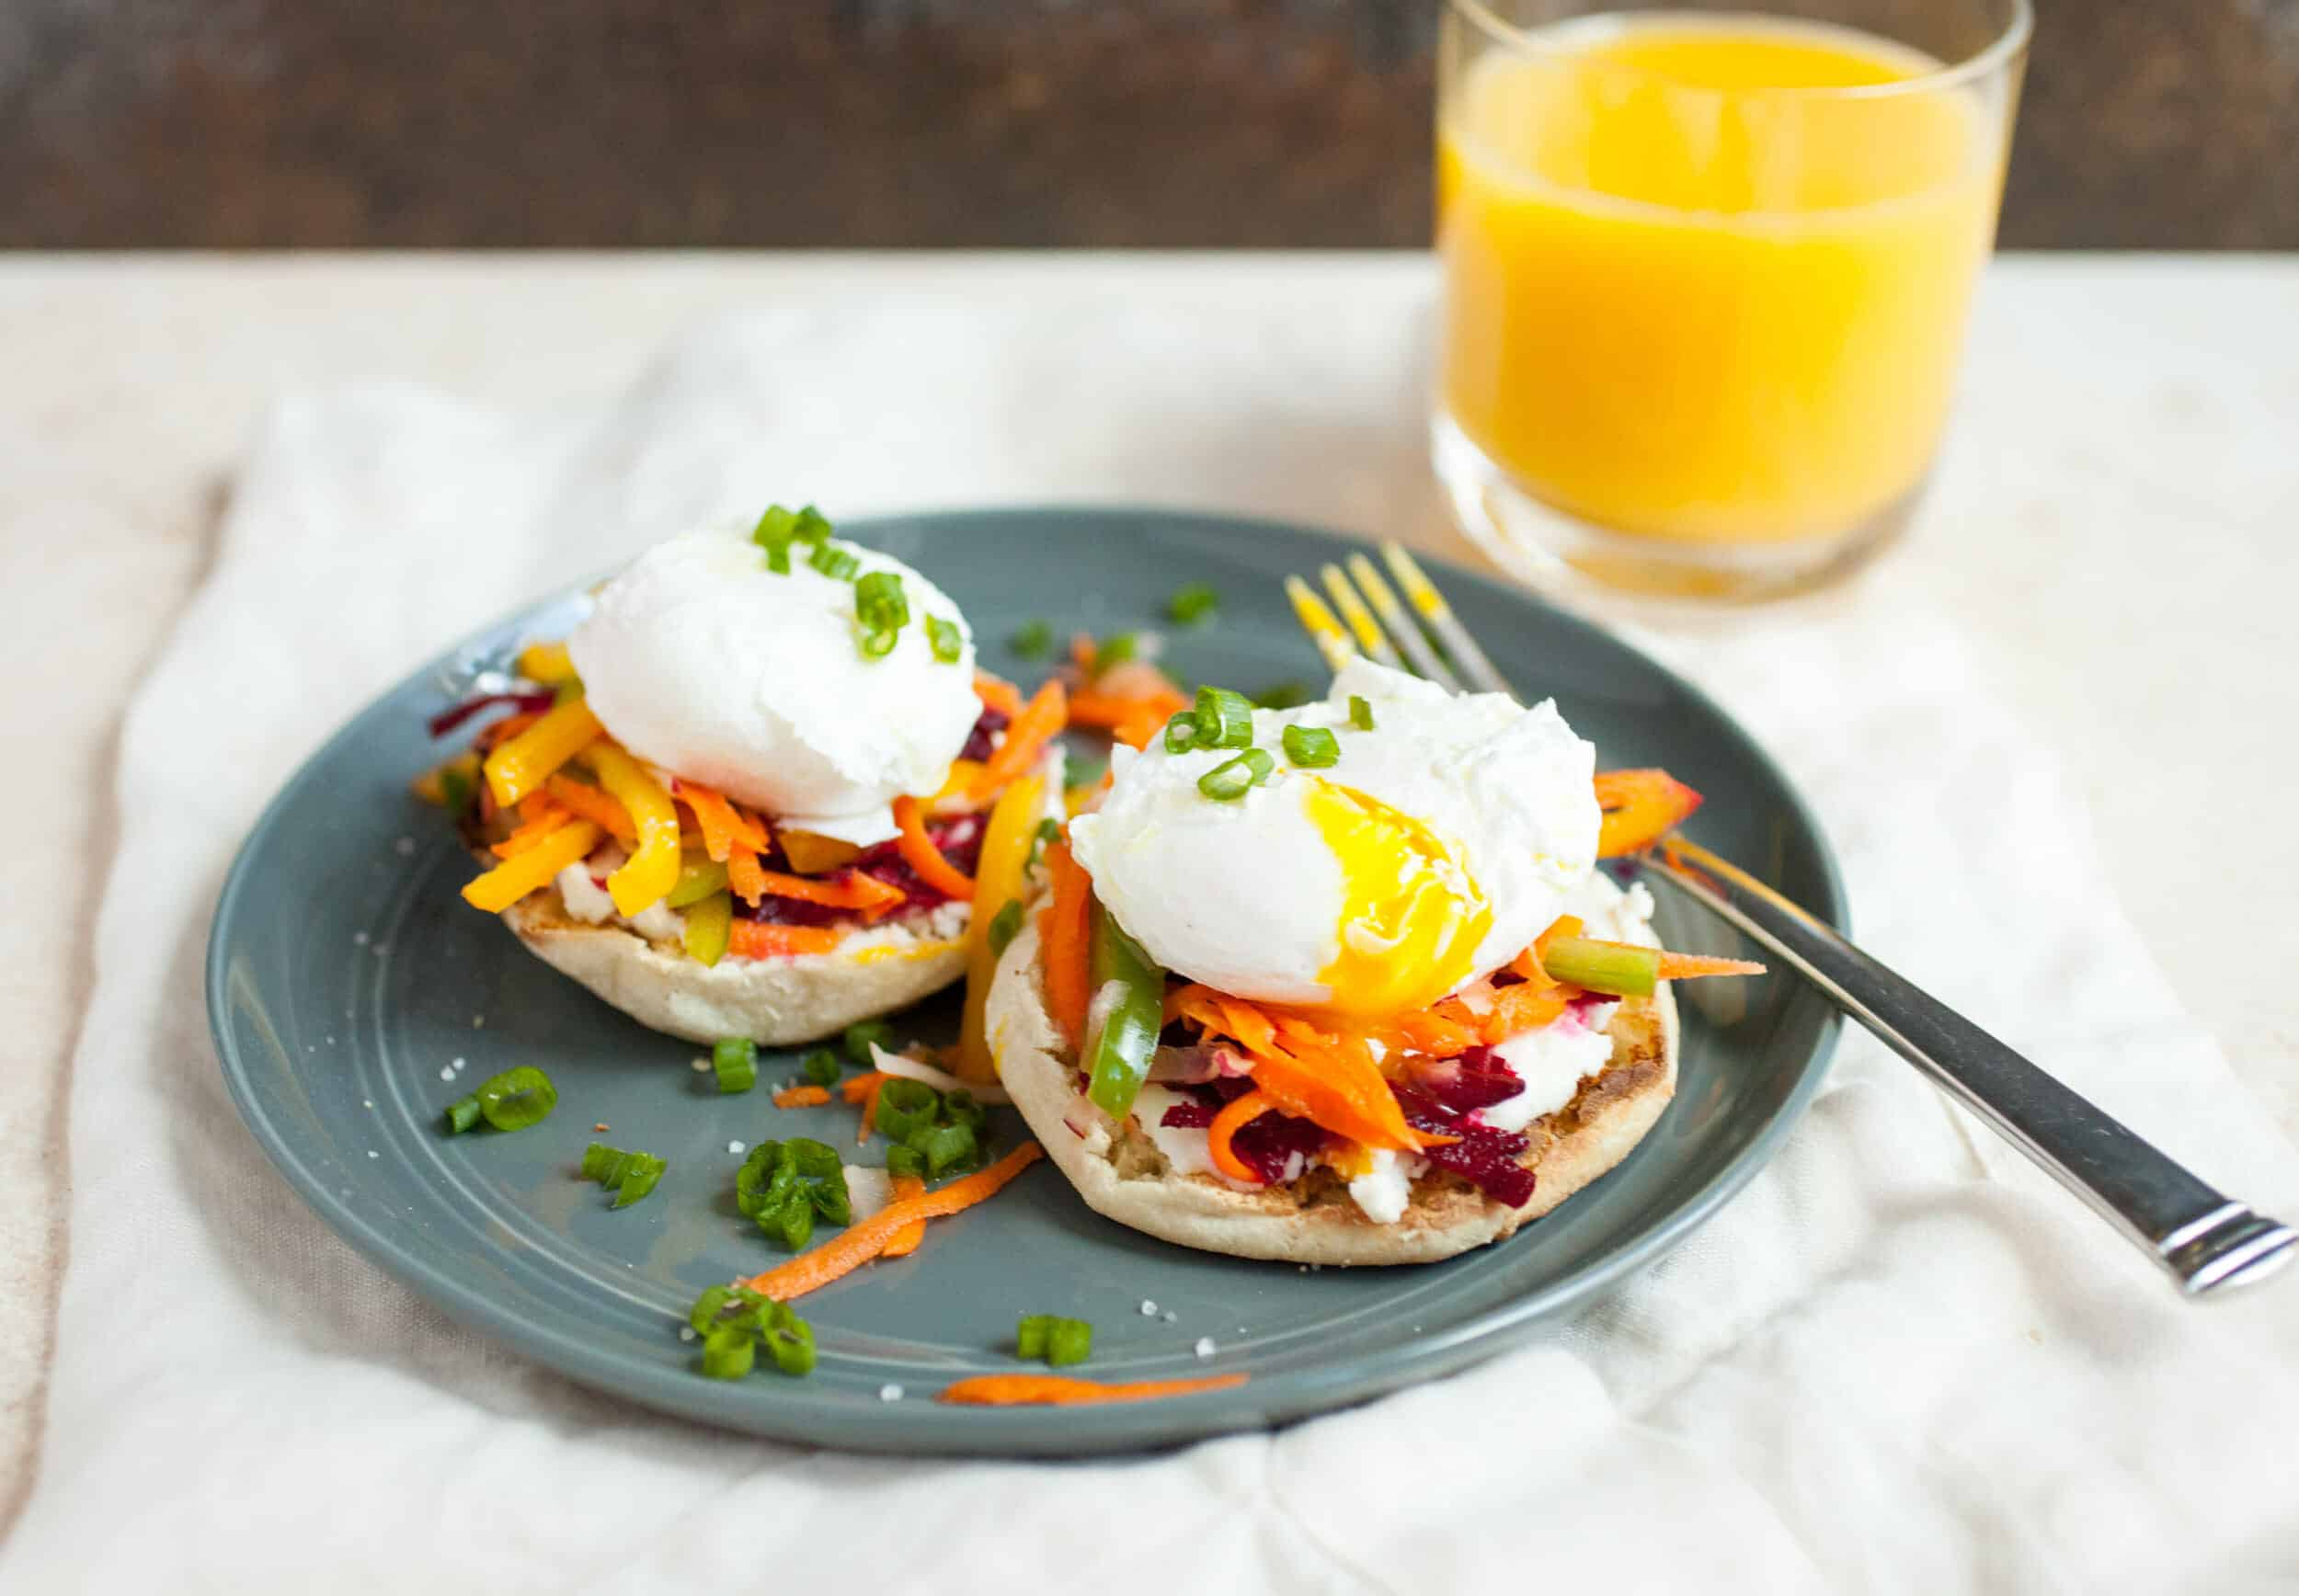 Ricotta Rainbow Veggie Toasts: These simple breakfast toasts are topped with loads of colorful veggies and perfect poached eggs for an easy and elegant way to start the day! | macheesmo.com